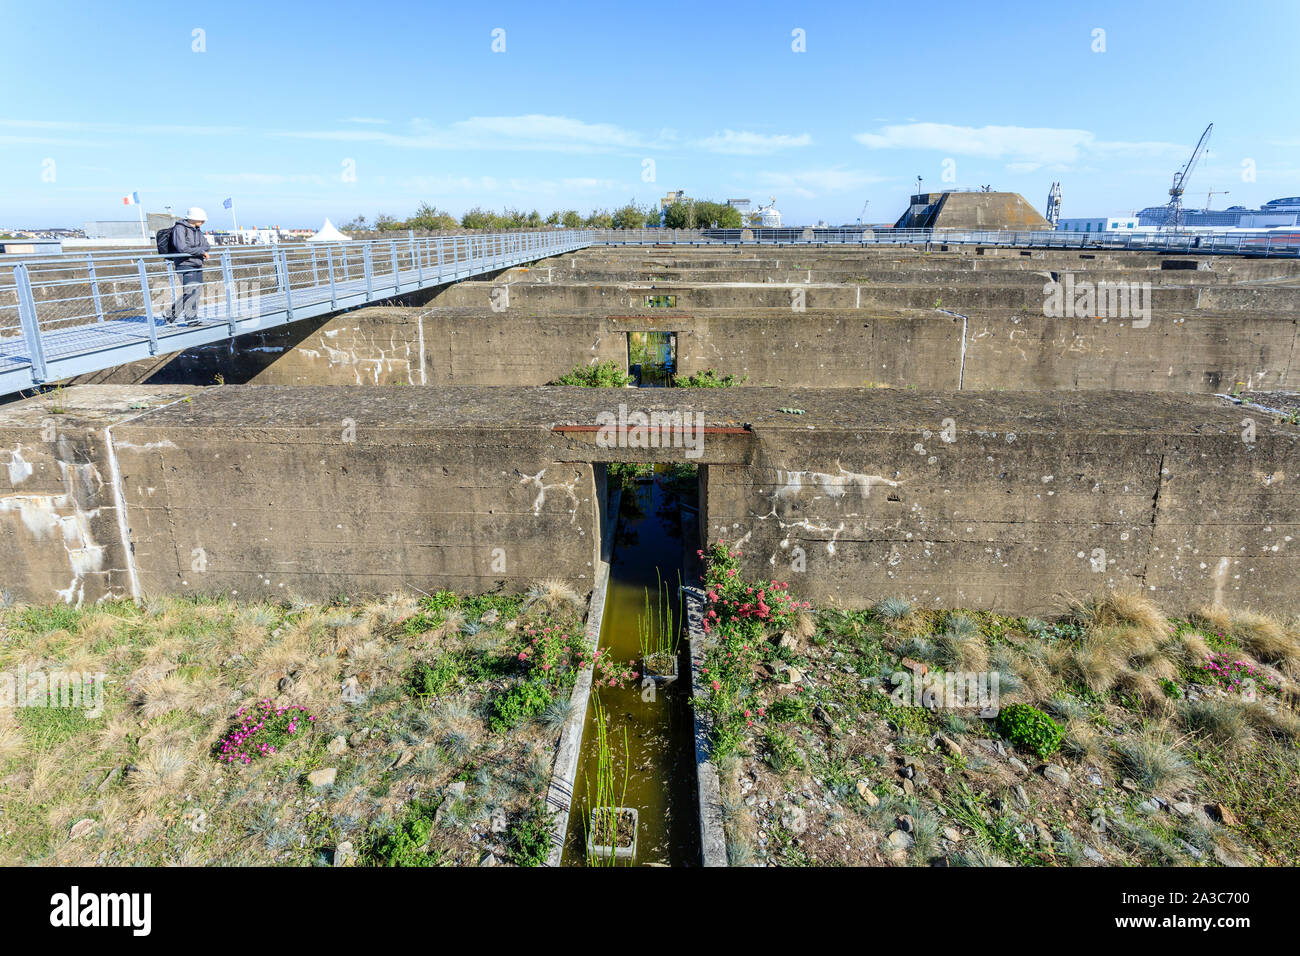 France, Loire Atlantique, Saint Nazaire, gardens of the Tiers Paysage (Third Landscape Gardens) installed on the roof of the old submarine base, here Stock Photo